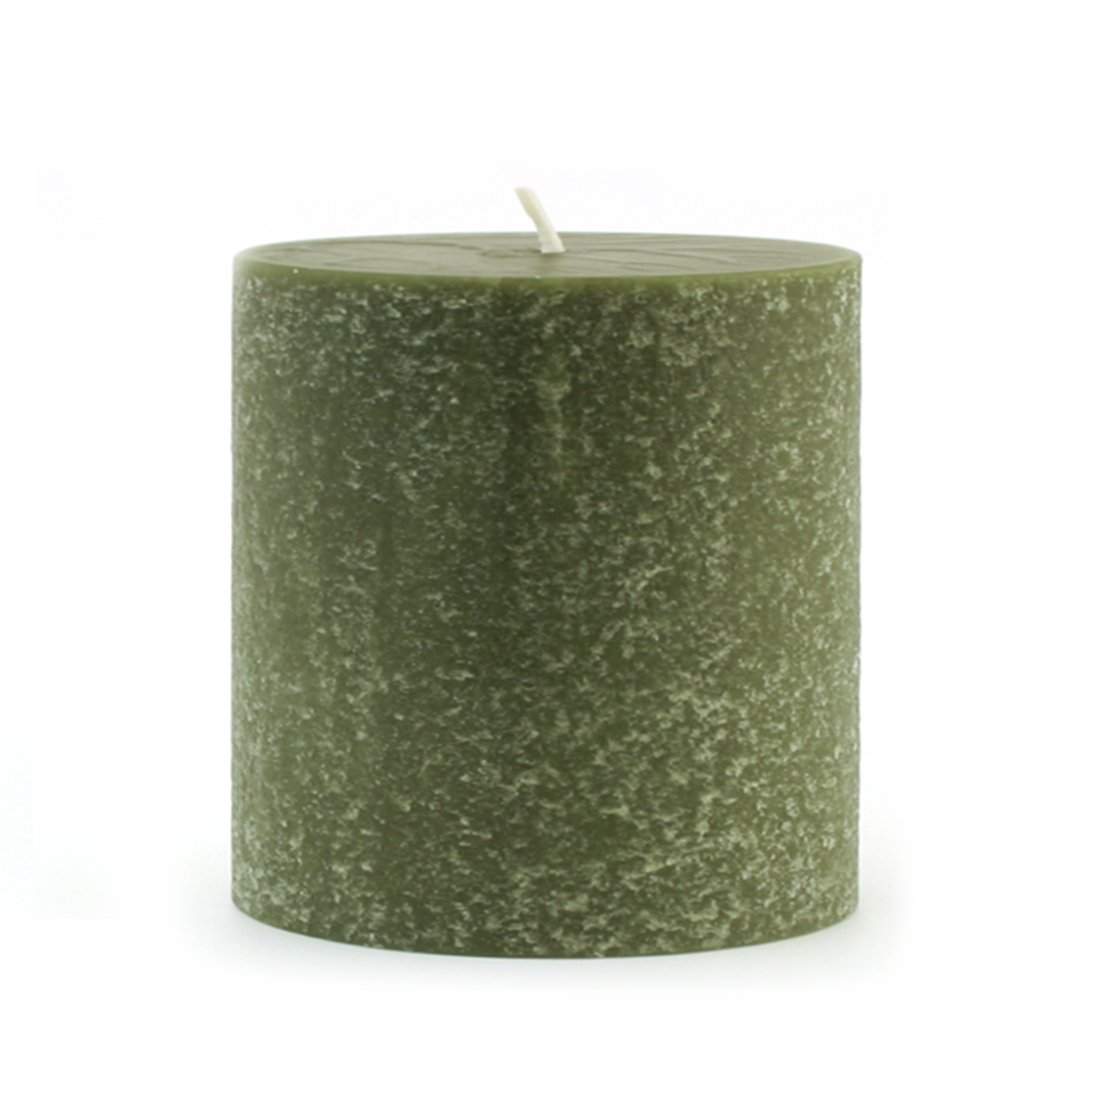 Root Scented Timberline Pillar Candle, 3-Inch by 3-Inch Tall, Very Violet 333219